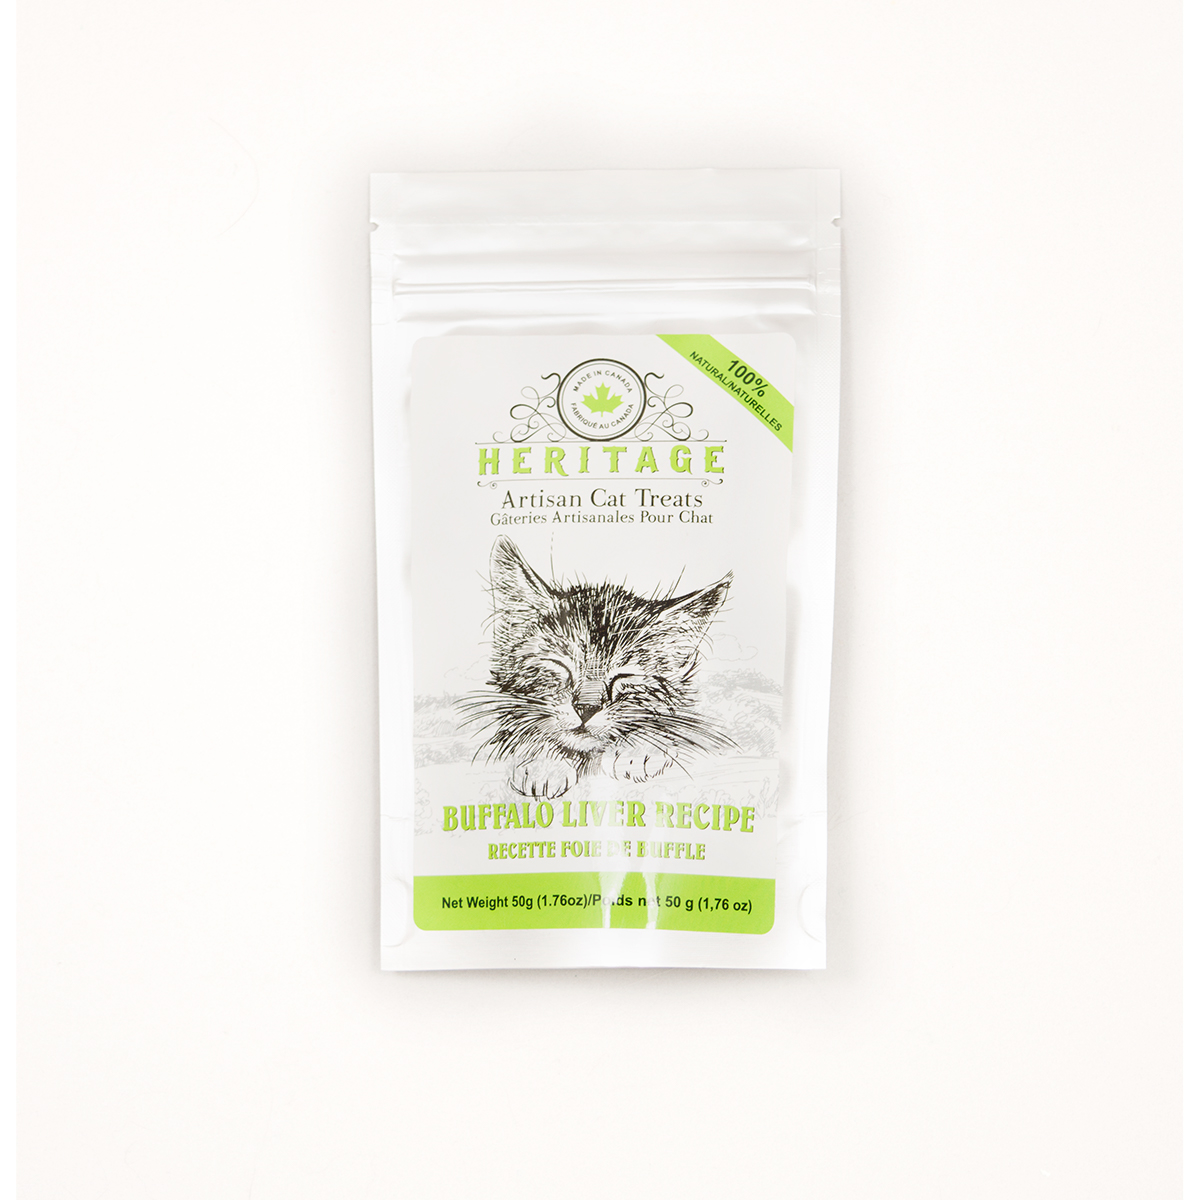 Heritage Artisan Cat Treats